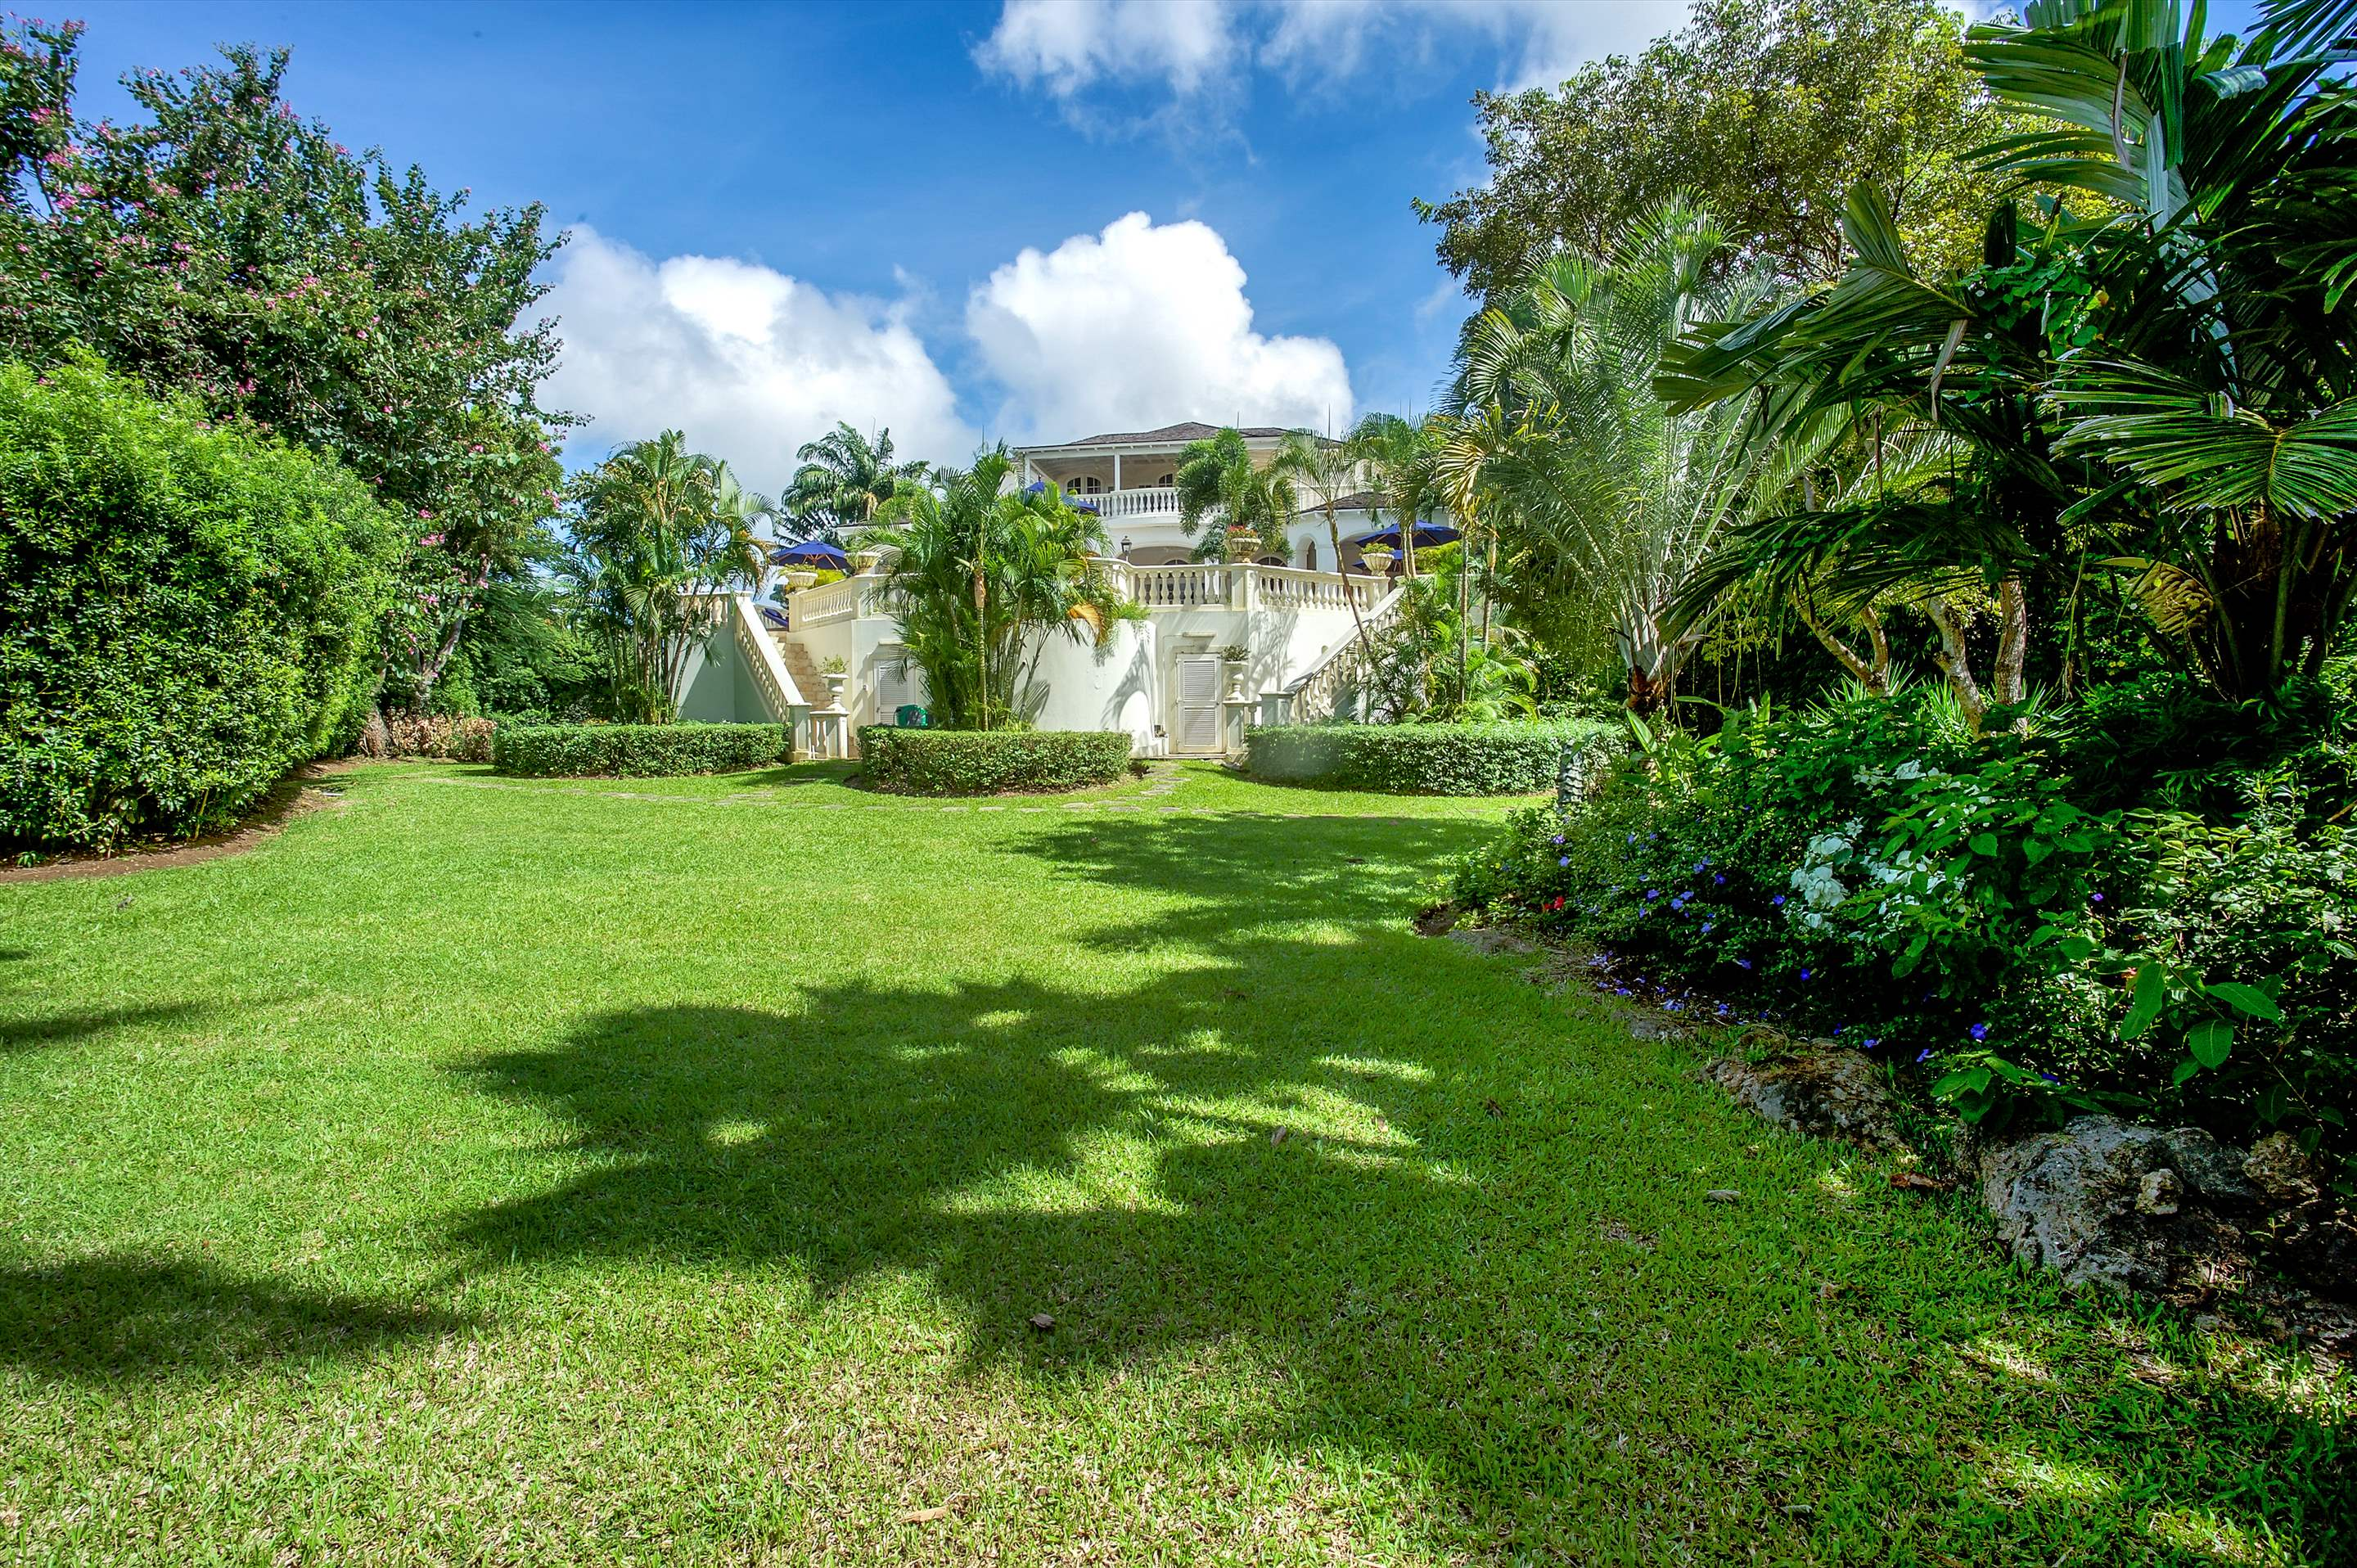 Plantation House, Royal Westmoreland, 6 bedroom, 6 bedroom villa in St. James & West Coast, Barbados Photo #23